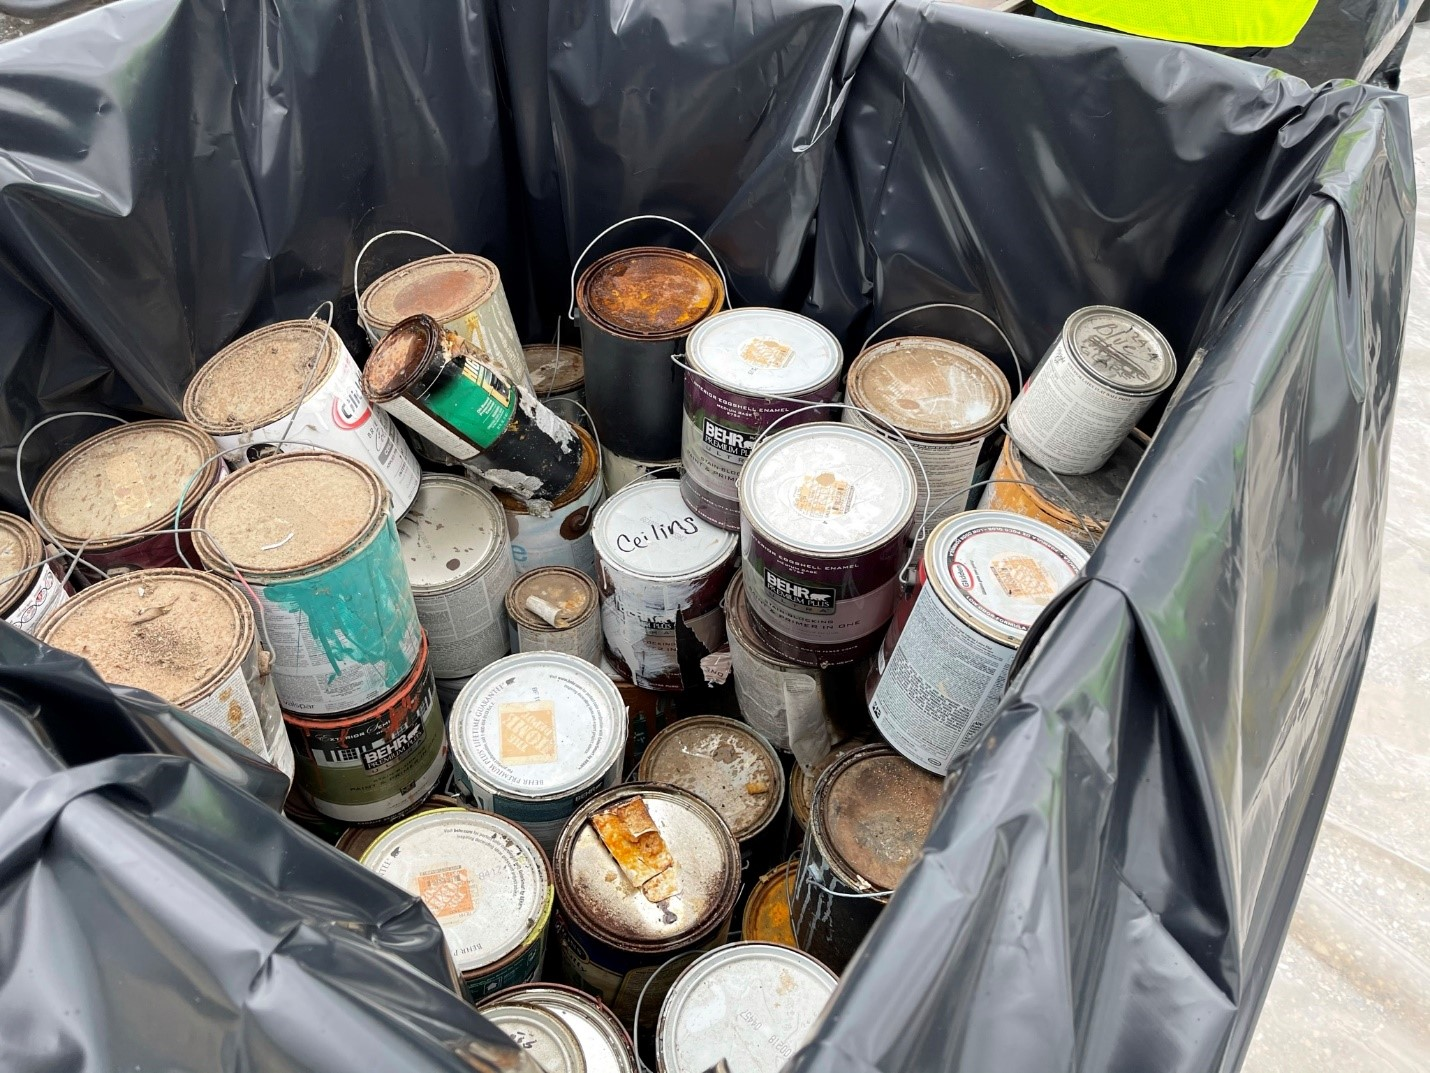 Used paint collected at a River Authority Household Hazardous Waste Collection Event